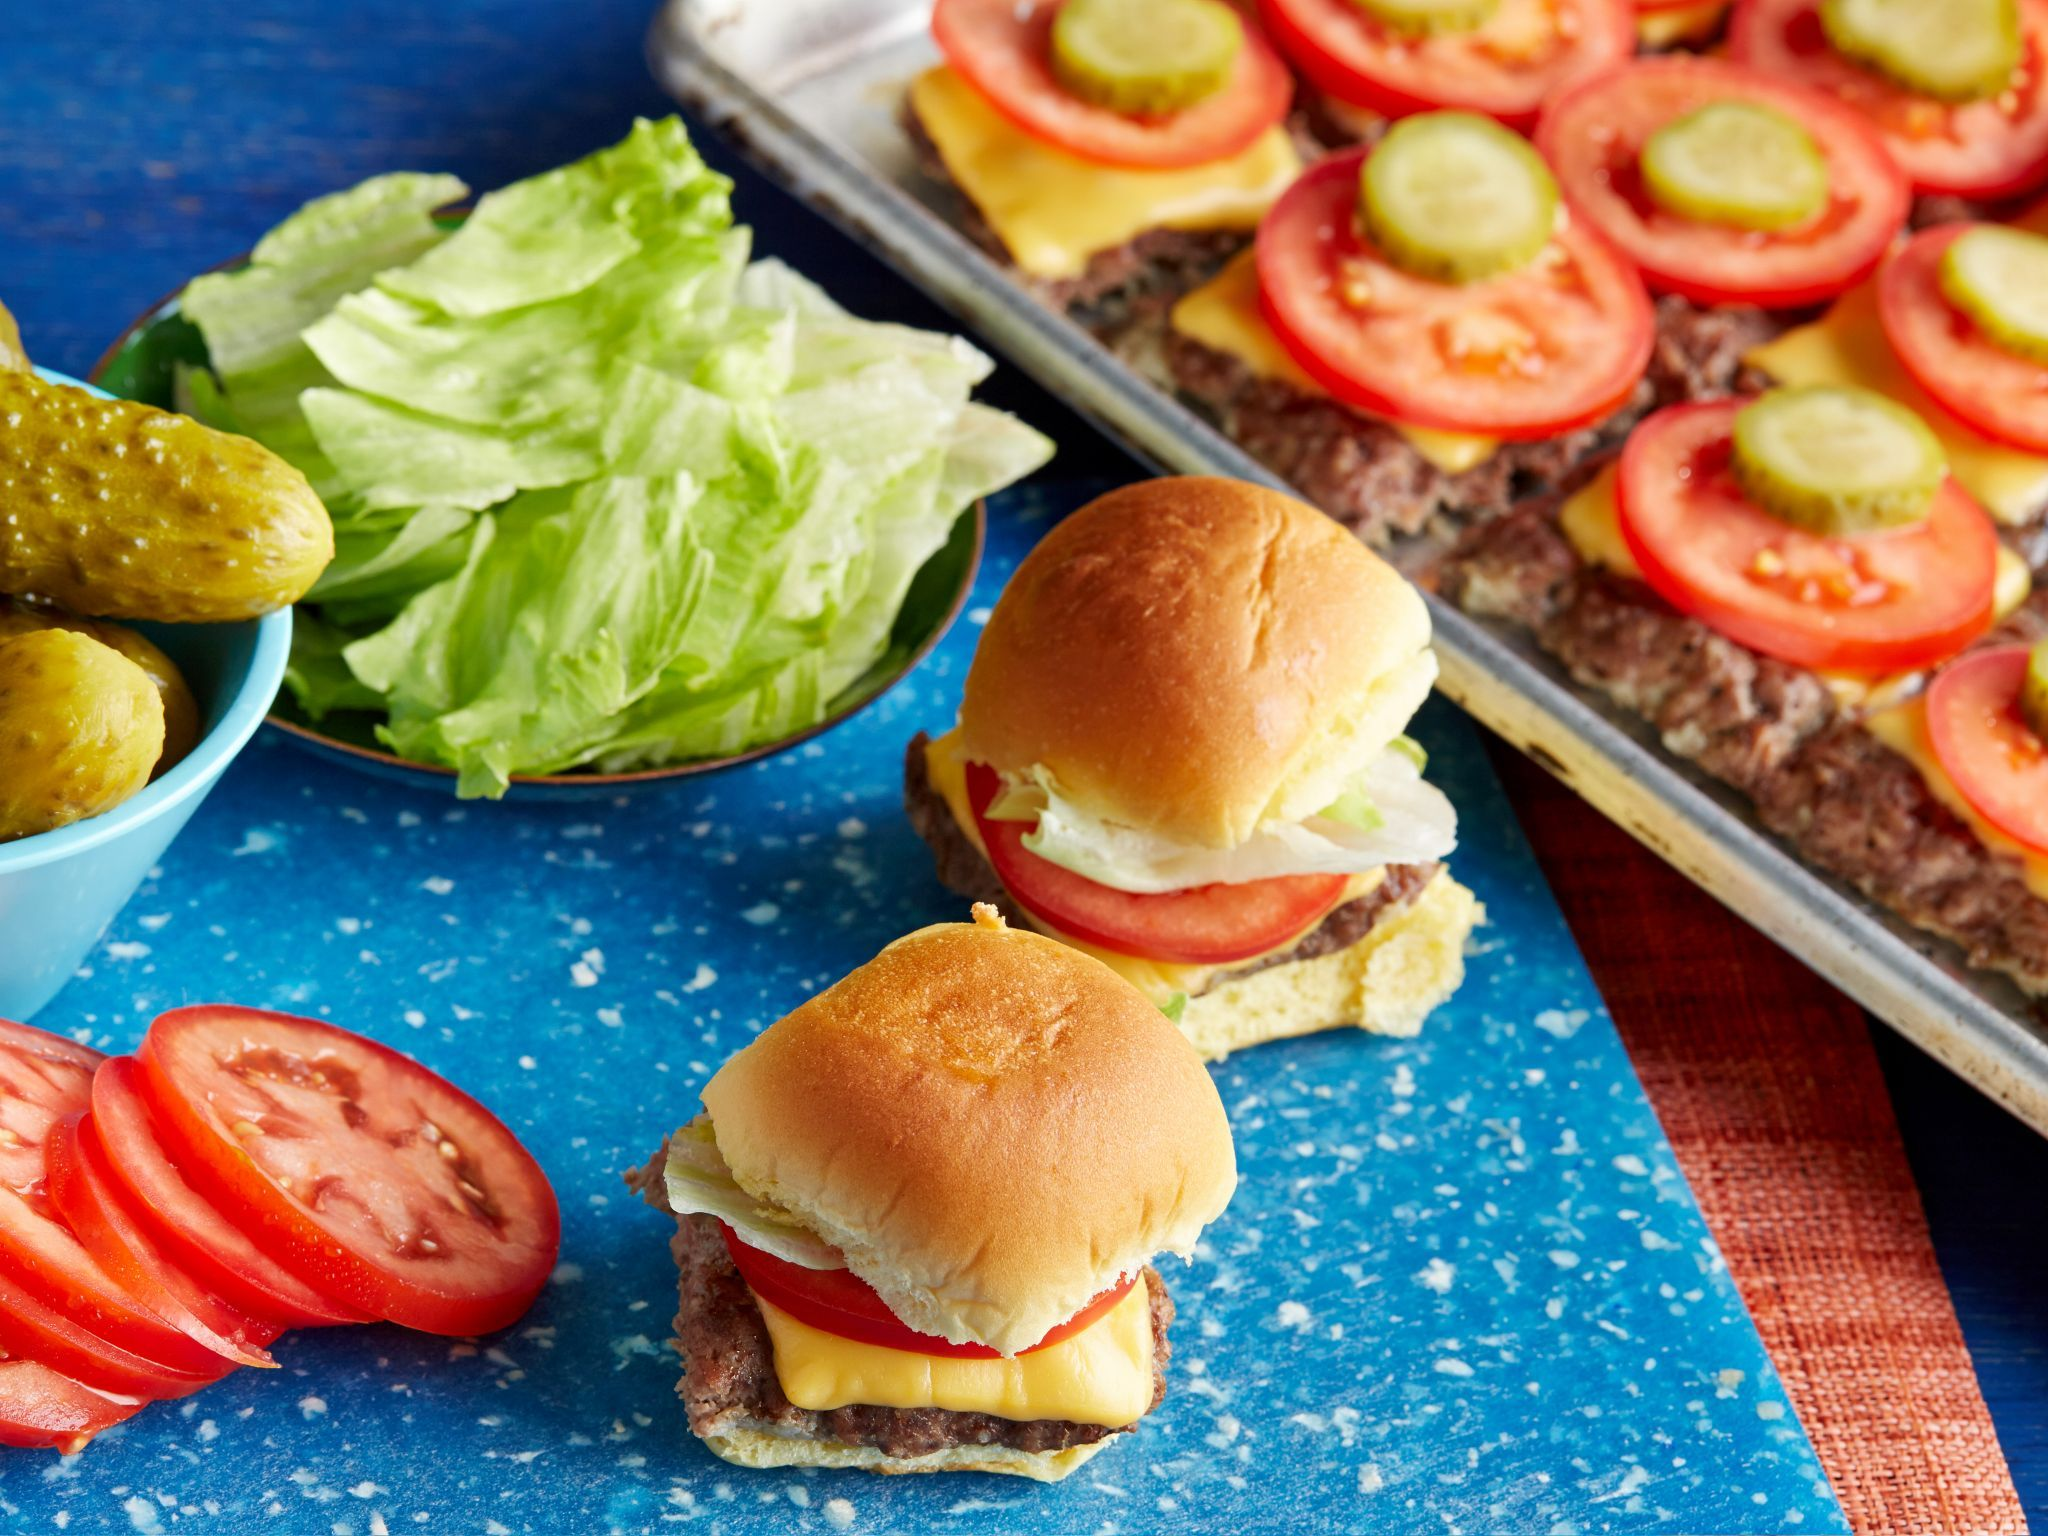 Super bowl dinner recipes food network beef sliders crowd and super bowl dinner recipes food network forumfinder Gallery